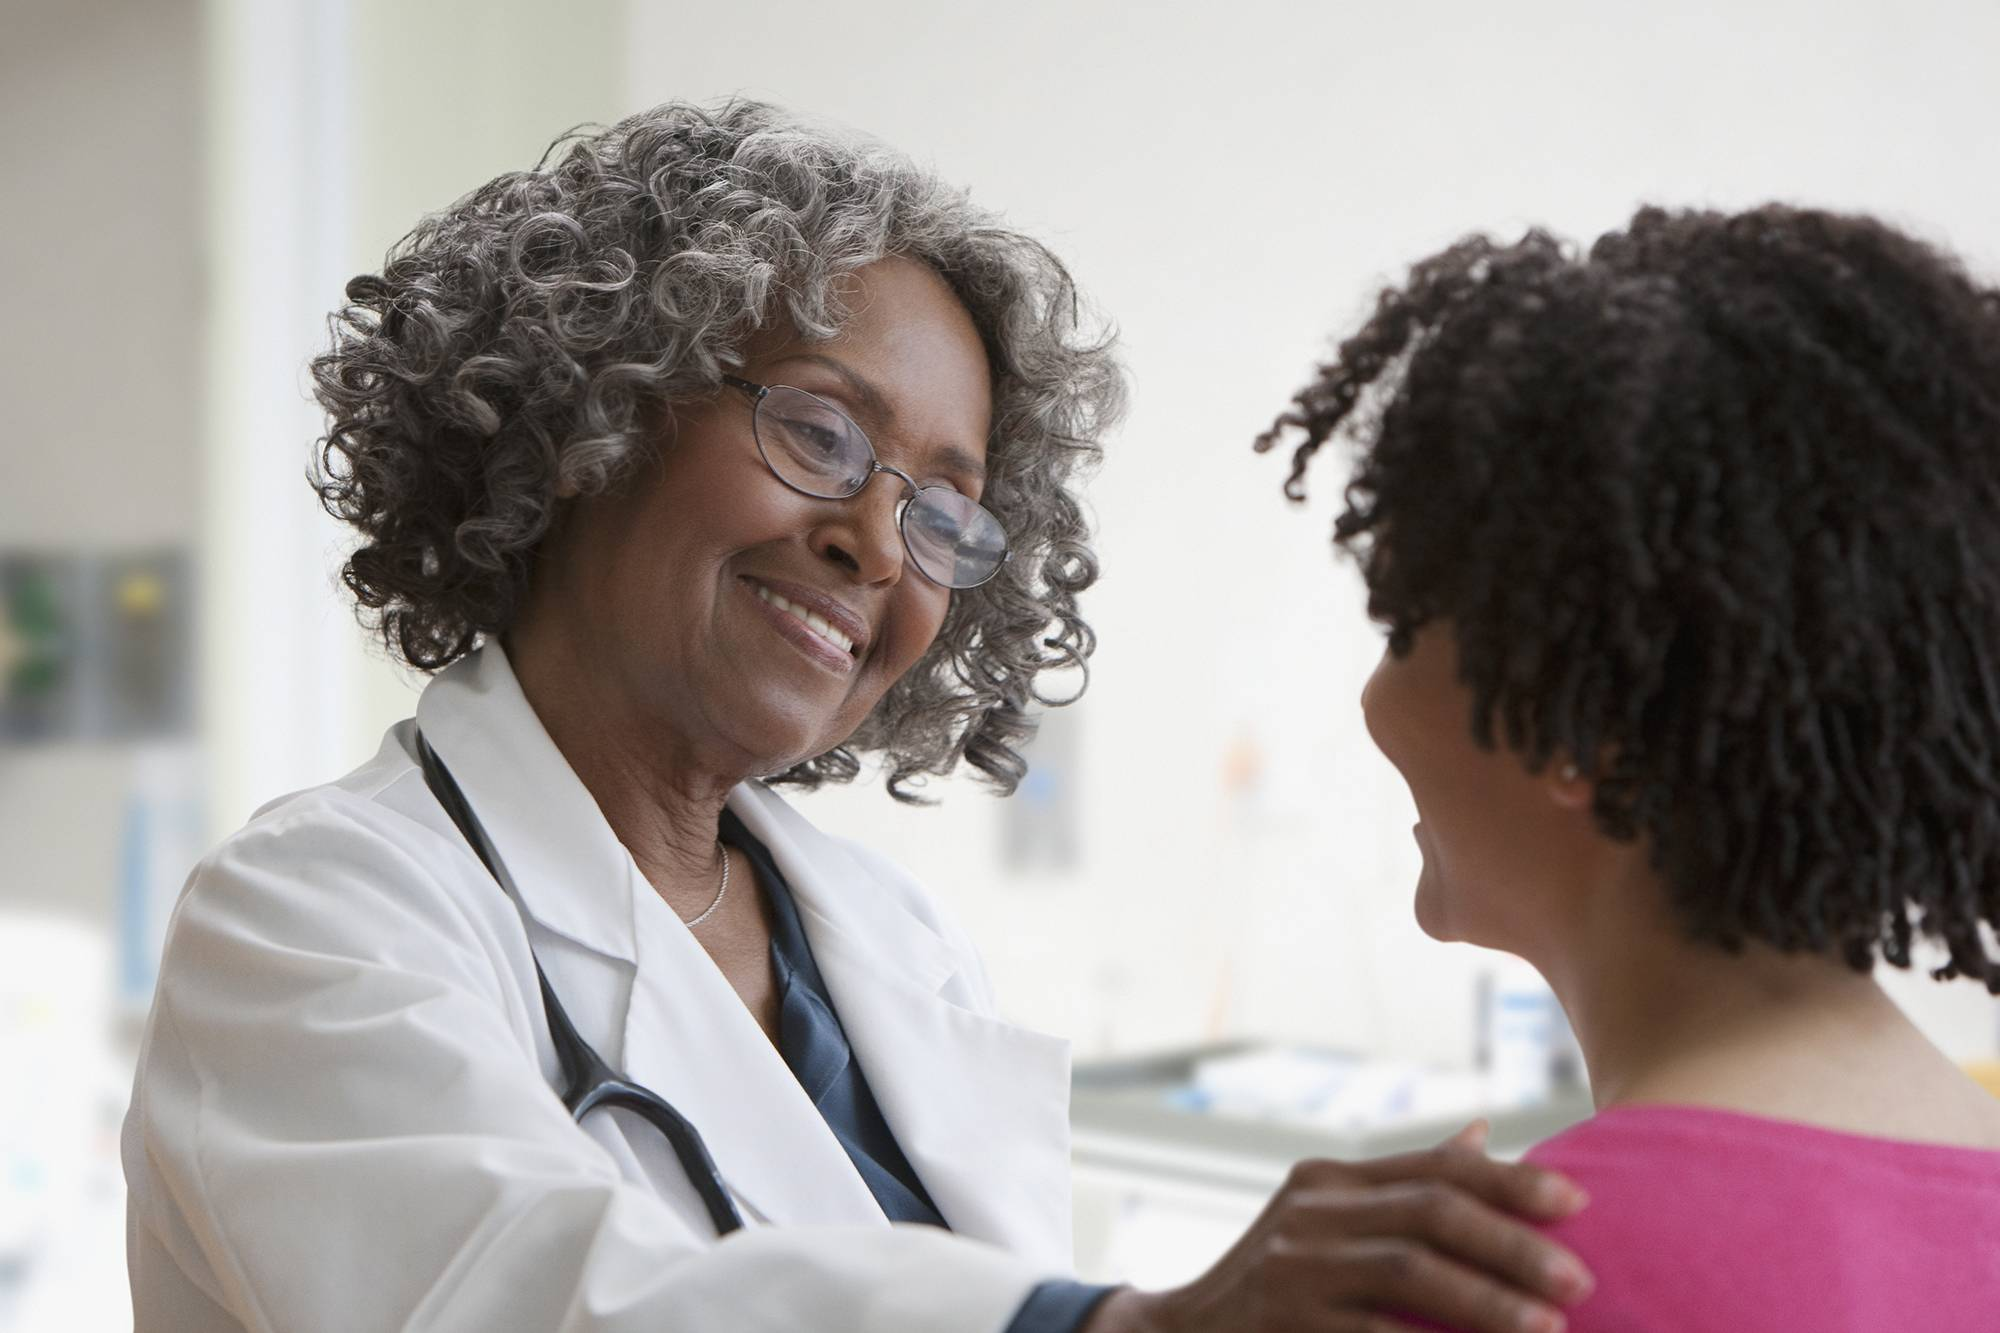 Smiling nurse talking with patient.